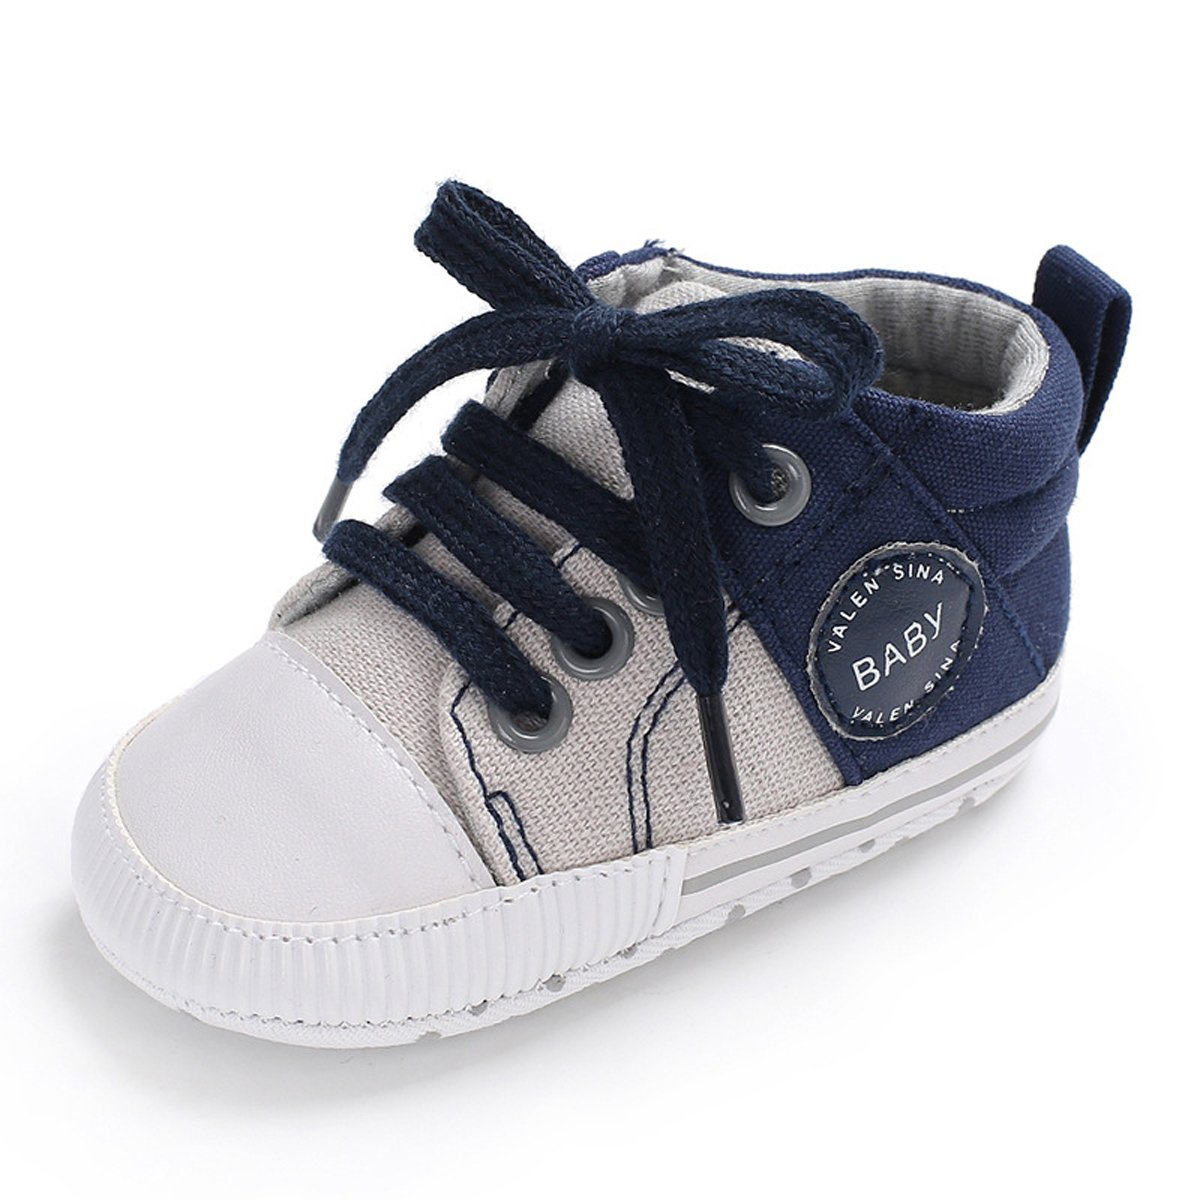 Tutoo Unisex Baby Boys Girls Soft Anti-Slip Sole Sneakers Newborn Intant First Walkers Canvas Denim Shoes (6-12 Months, A-Blue) by Tutoo (Image #1)